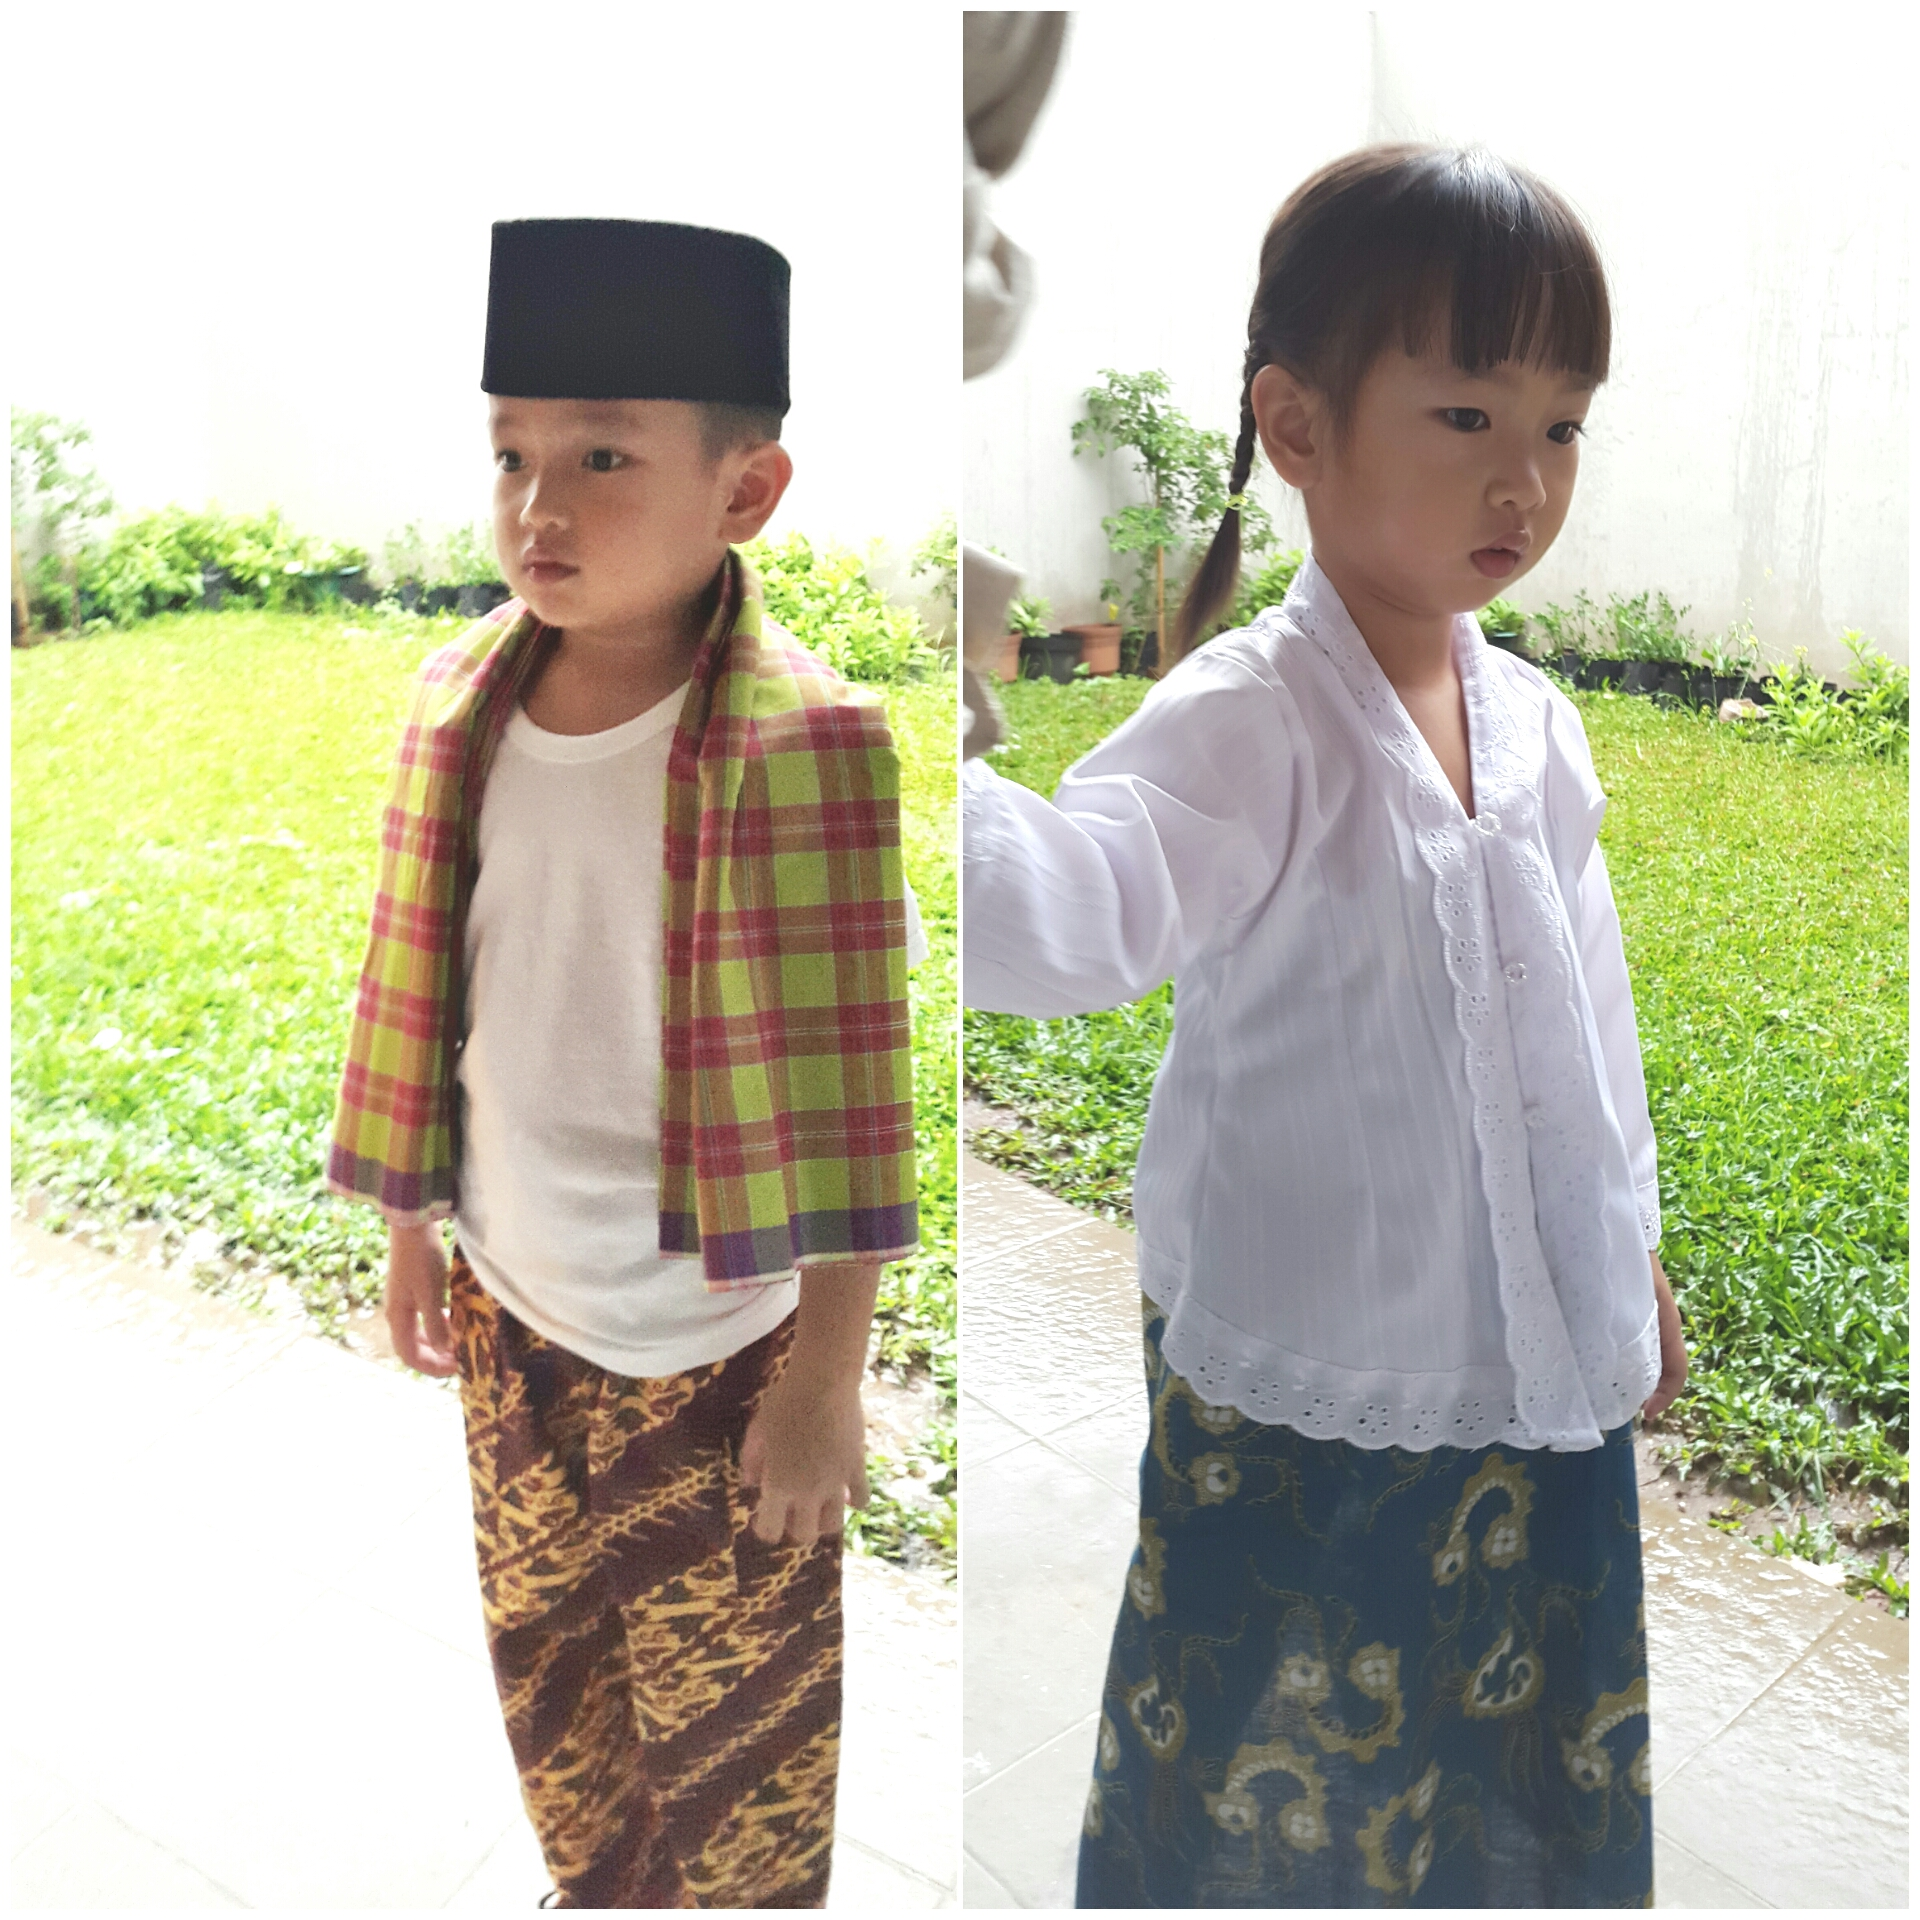 Kostum kartini | Arley and Tahnee